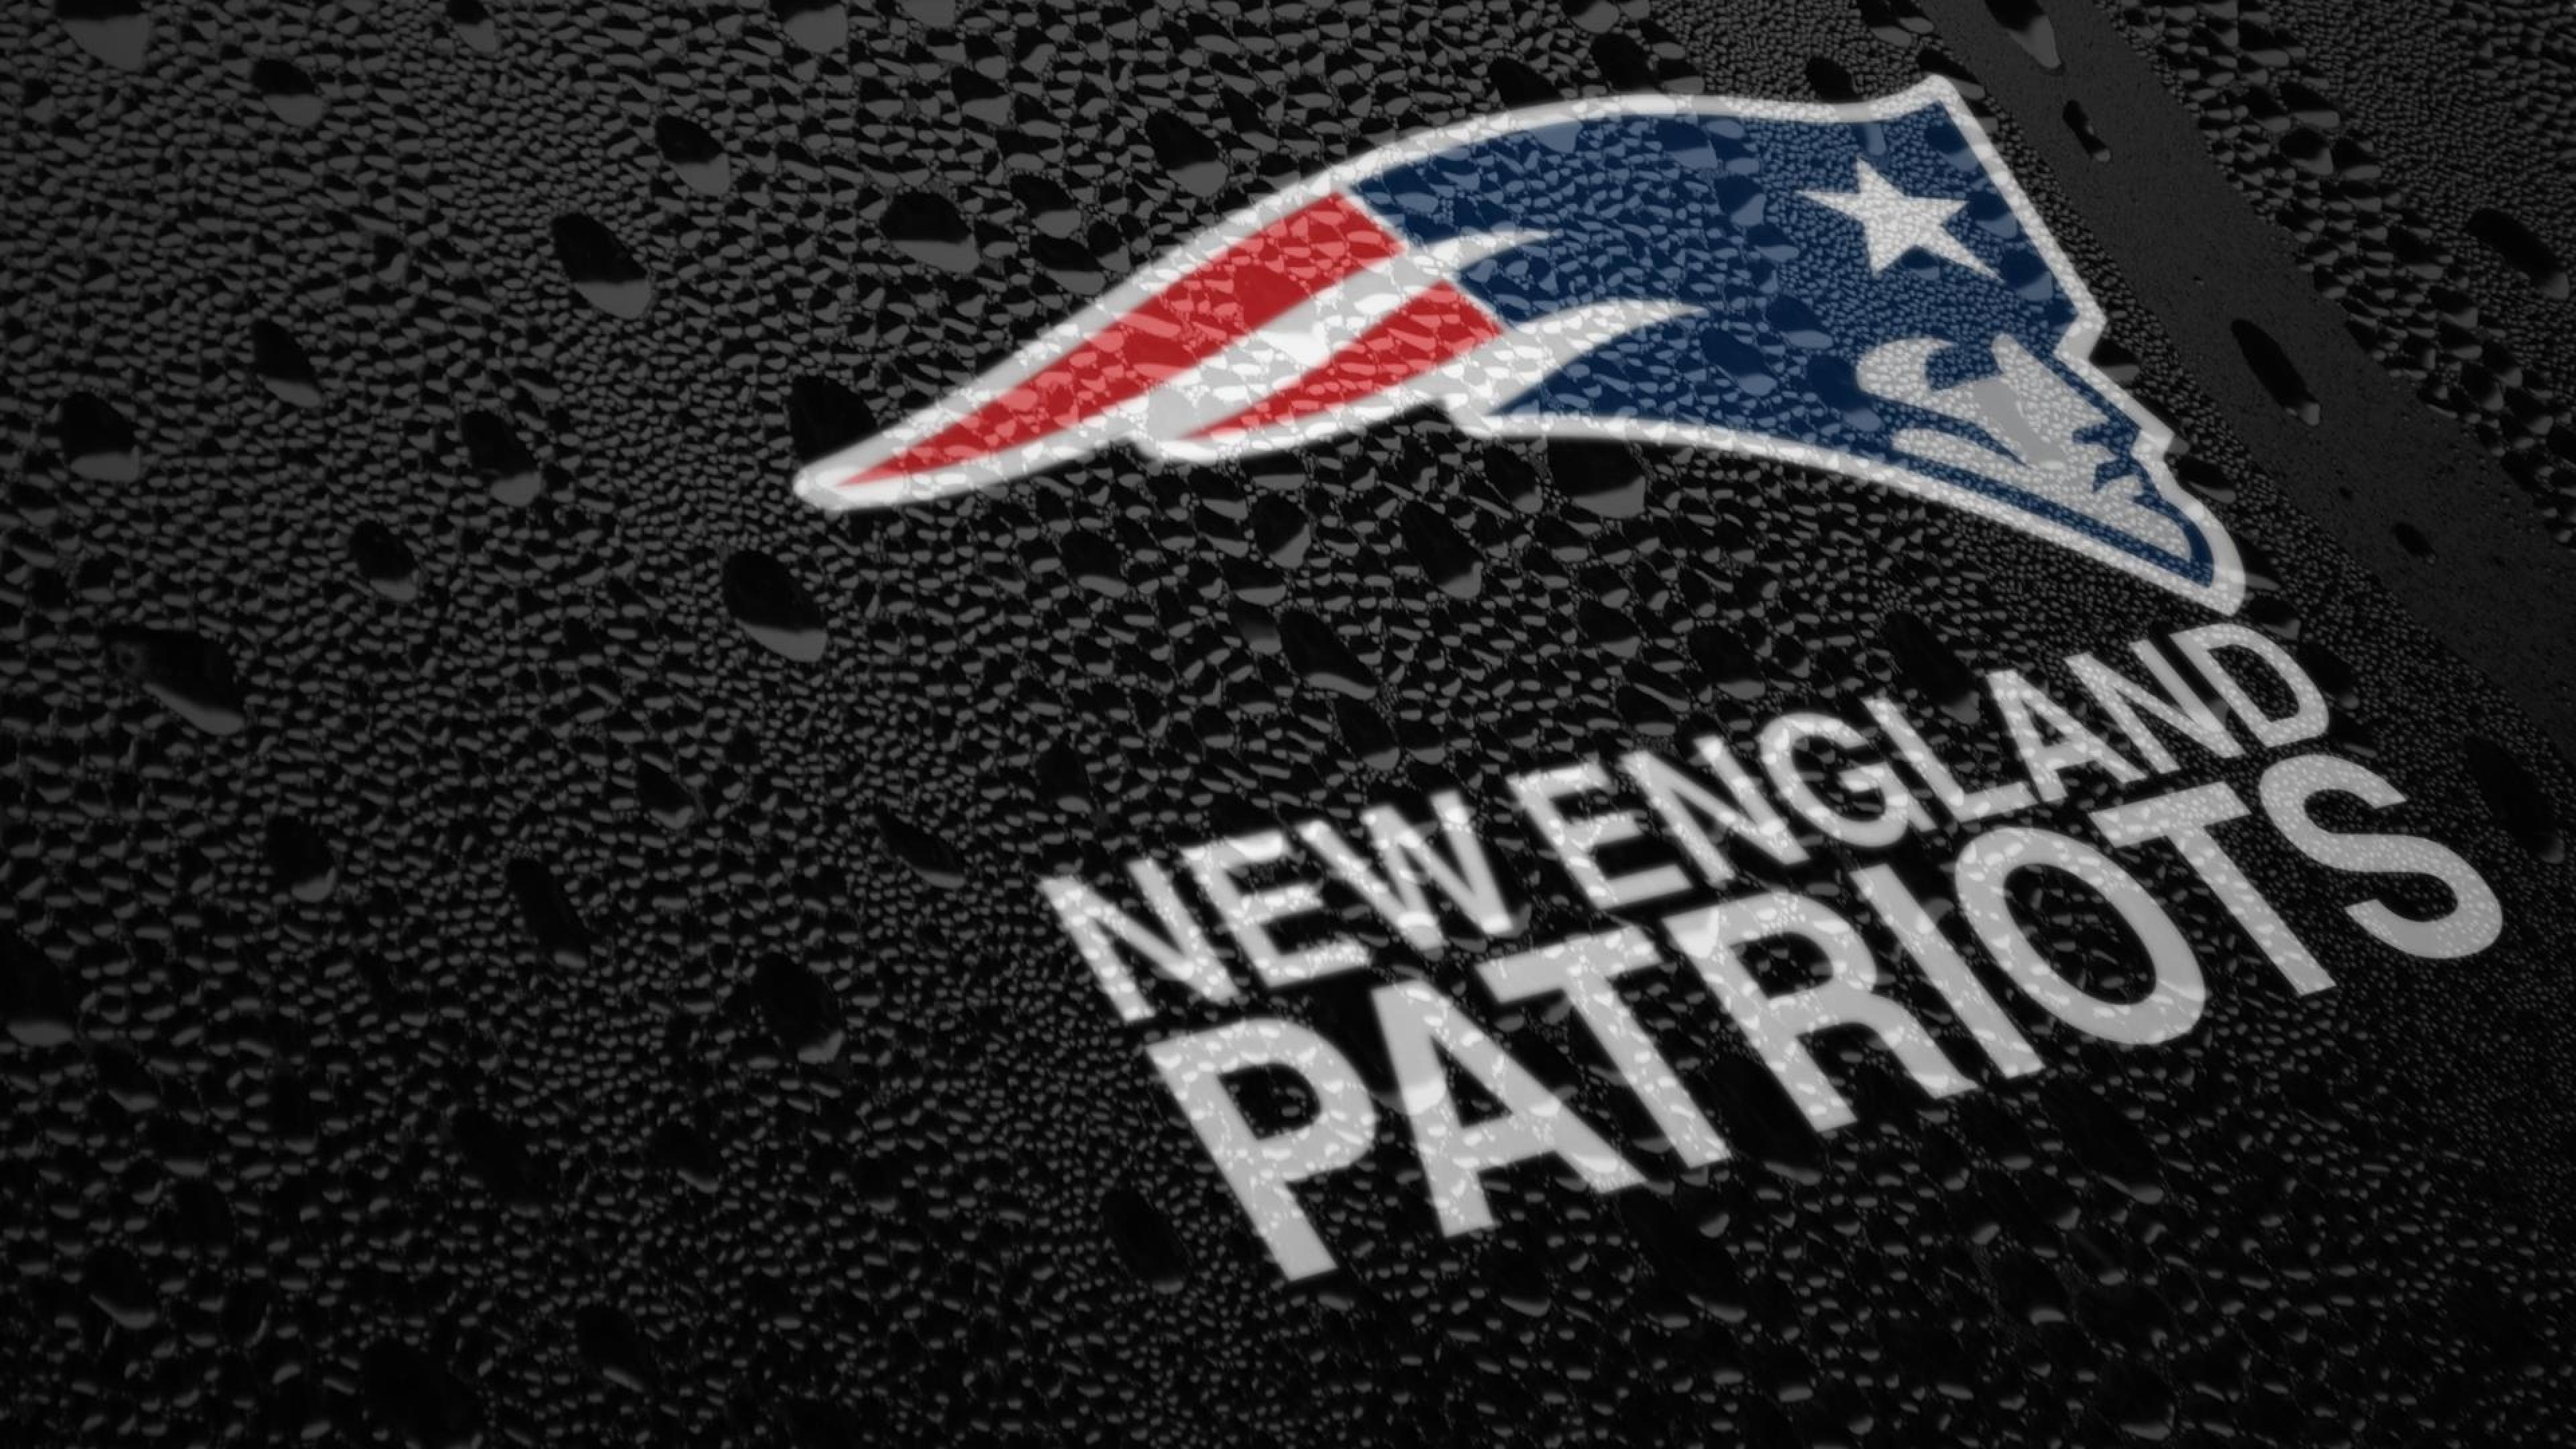 COD: Black Ops 3 How To Make NFL New England Patriots Emblem - Easy and fast